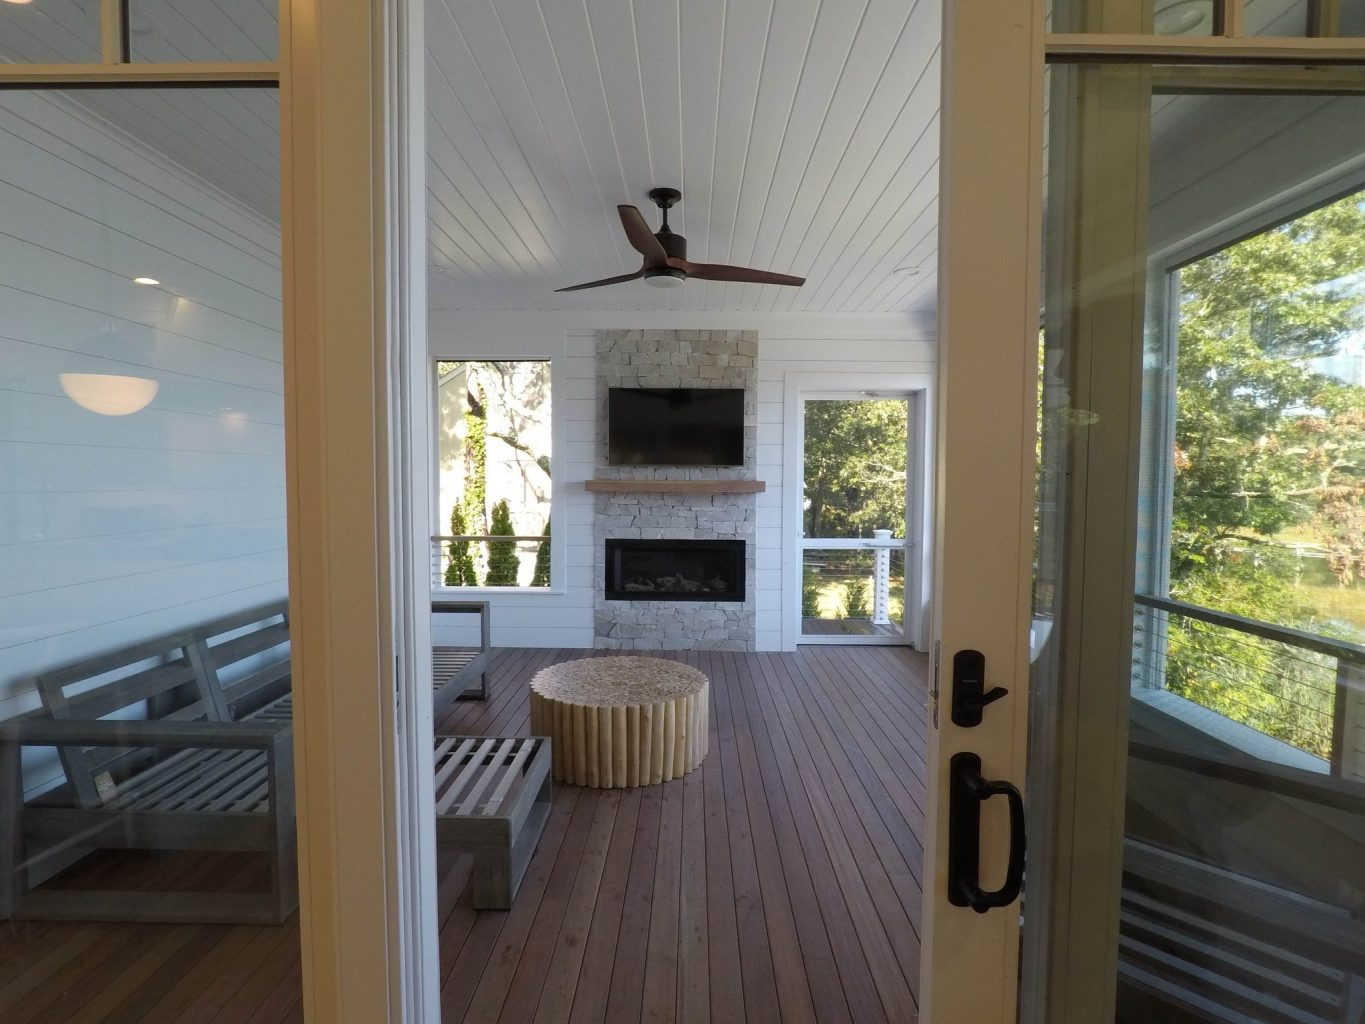 A screened-in outdoor deck becoms a four-season room with a couch, fireplace and TV